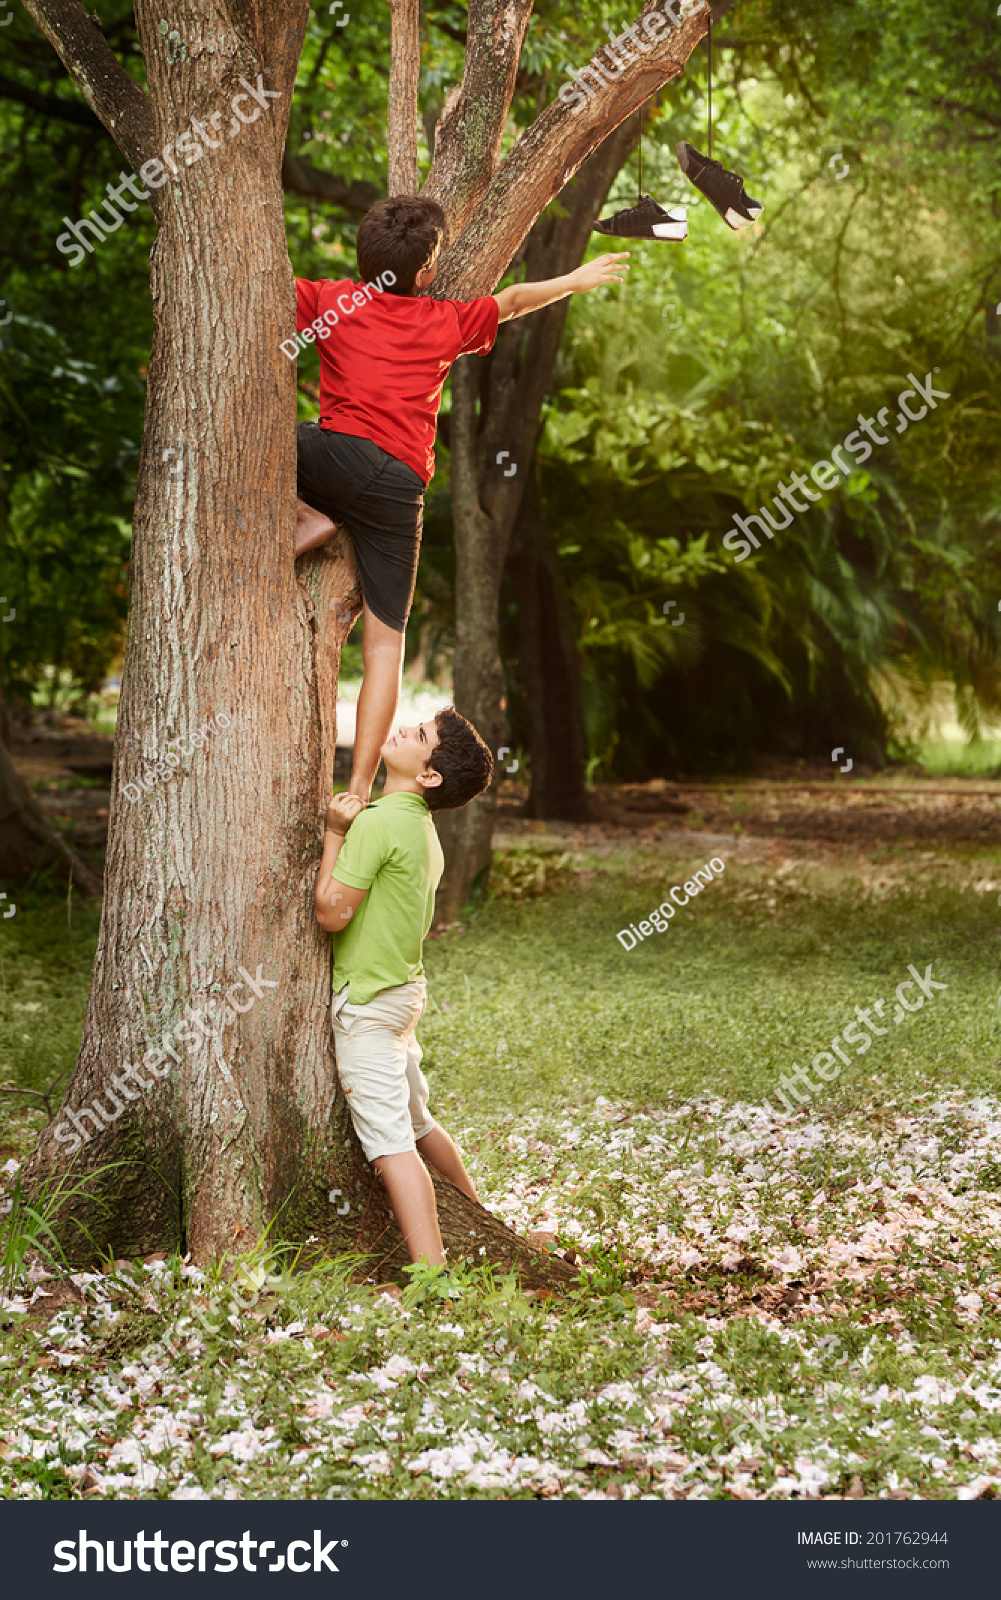 Two Kids Helping Each Other Climb Stock Photo 201762944 ...